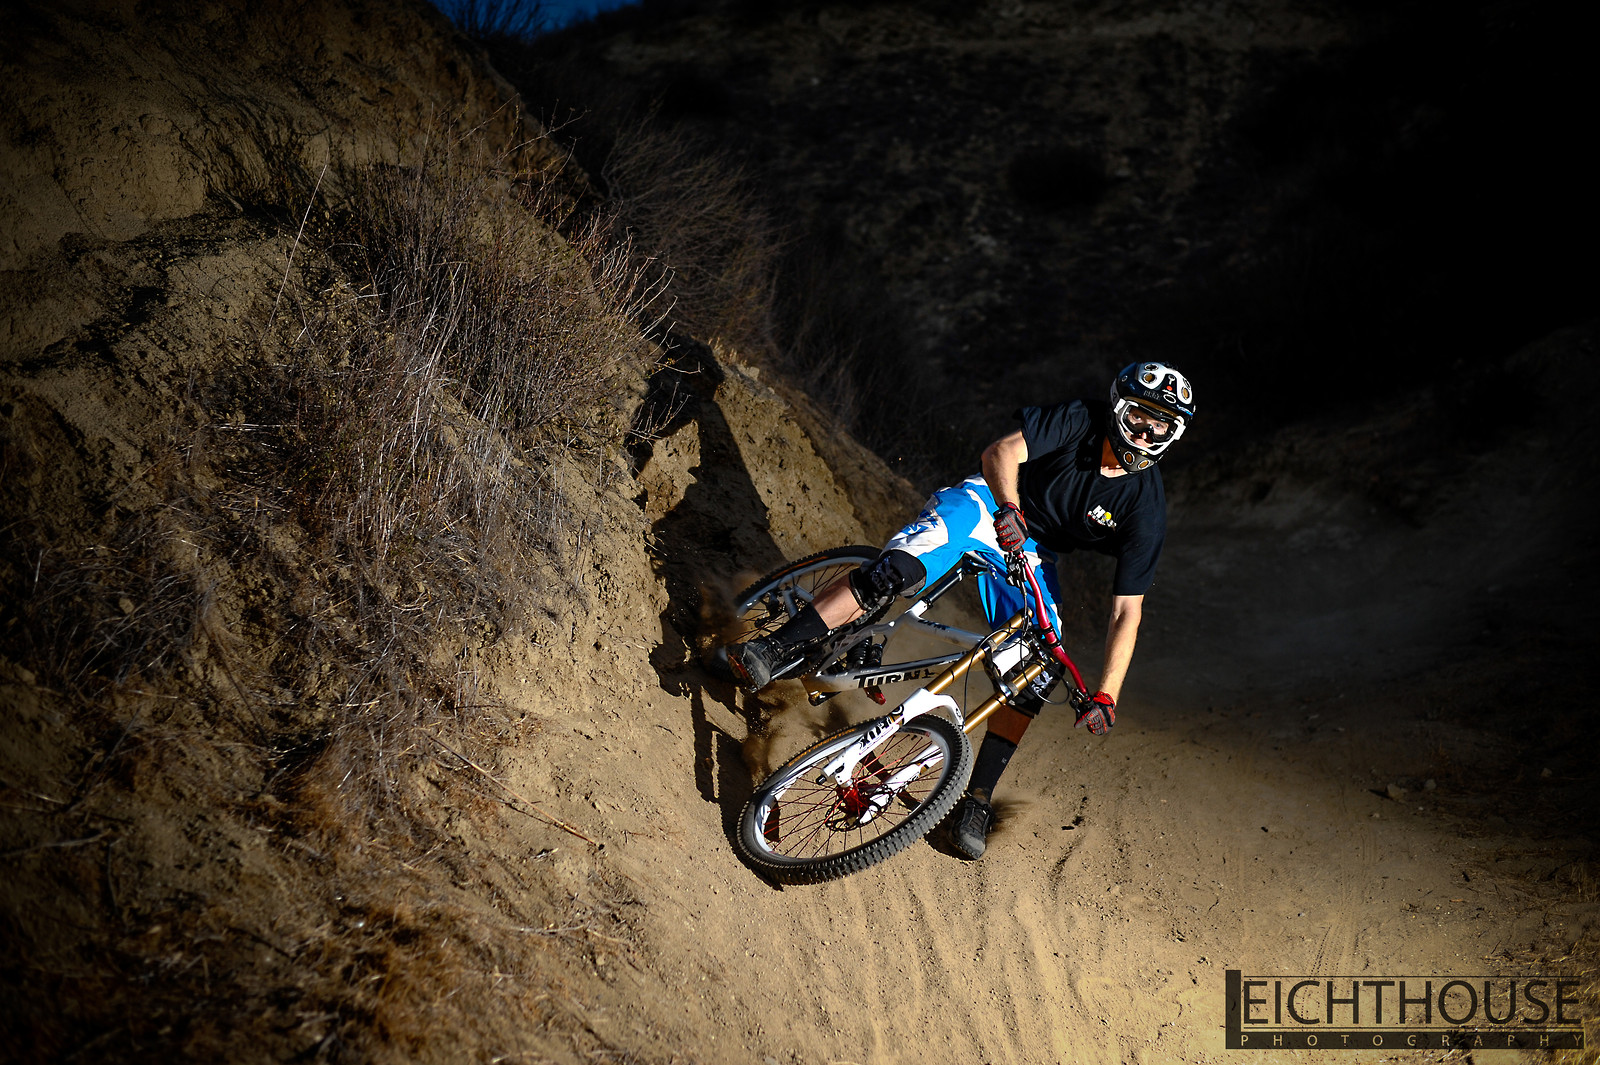 Drifting with the coyotes  - LeichtHouse photography - Mountain Biking Pictures - Vital MTB